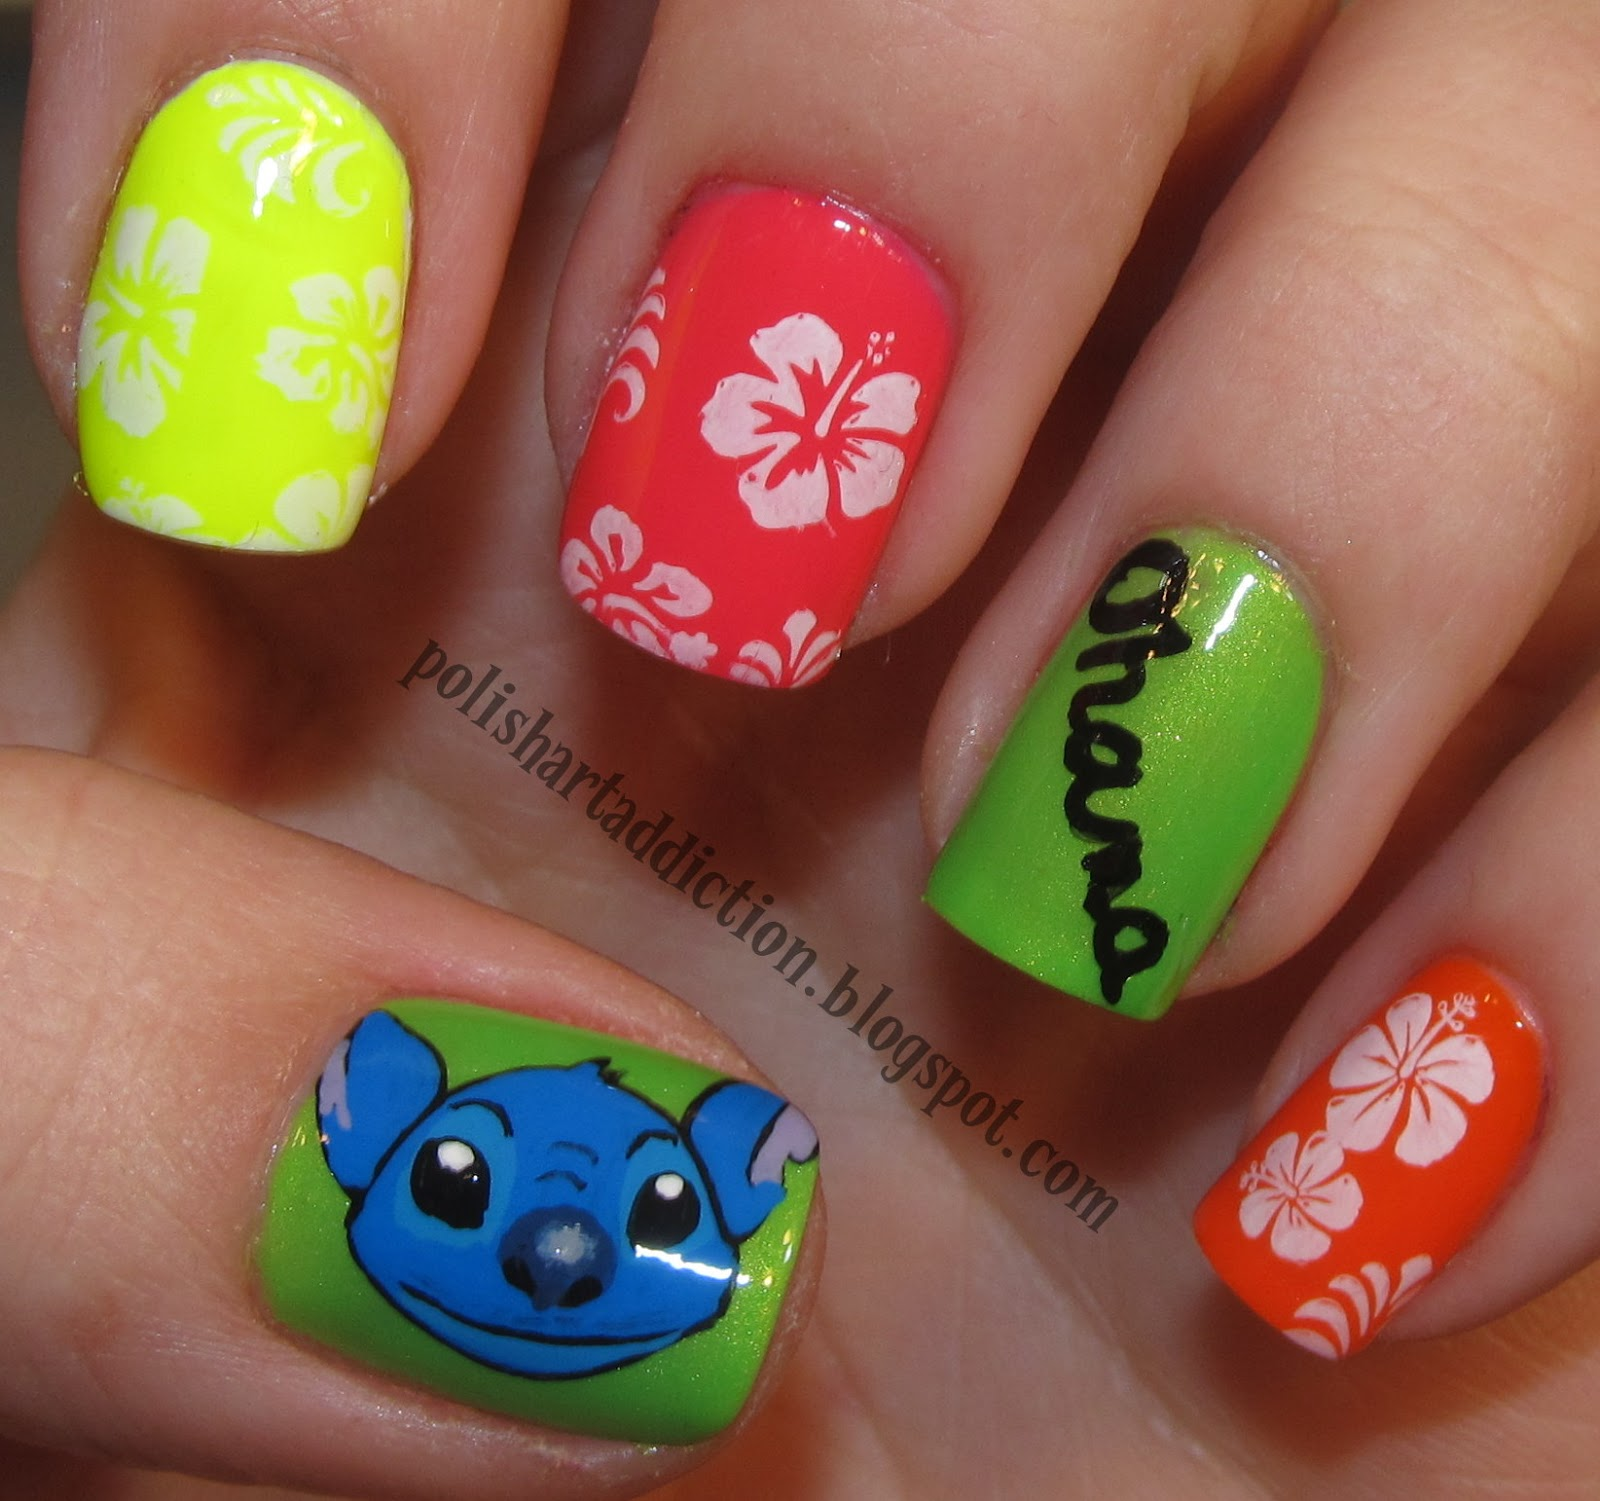 Disney Nail Art: Disney Lilo & Stitch Nail Art